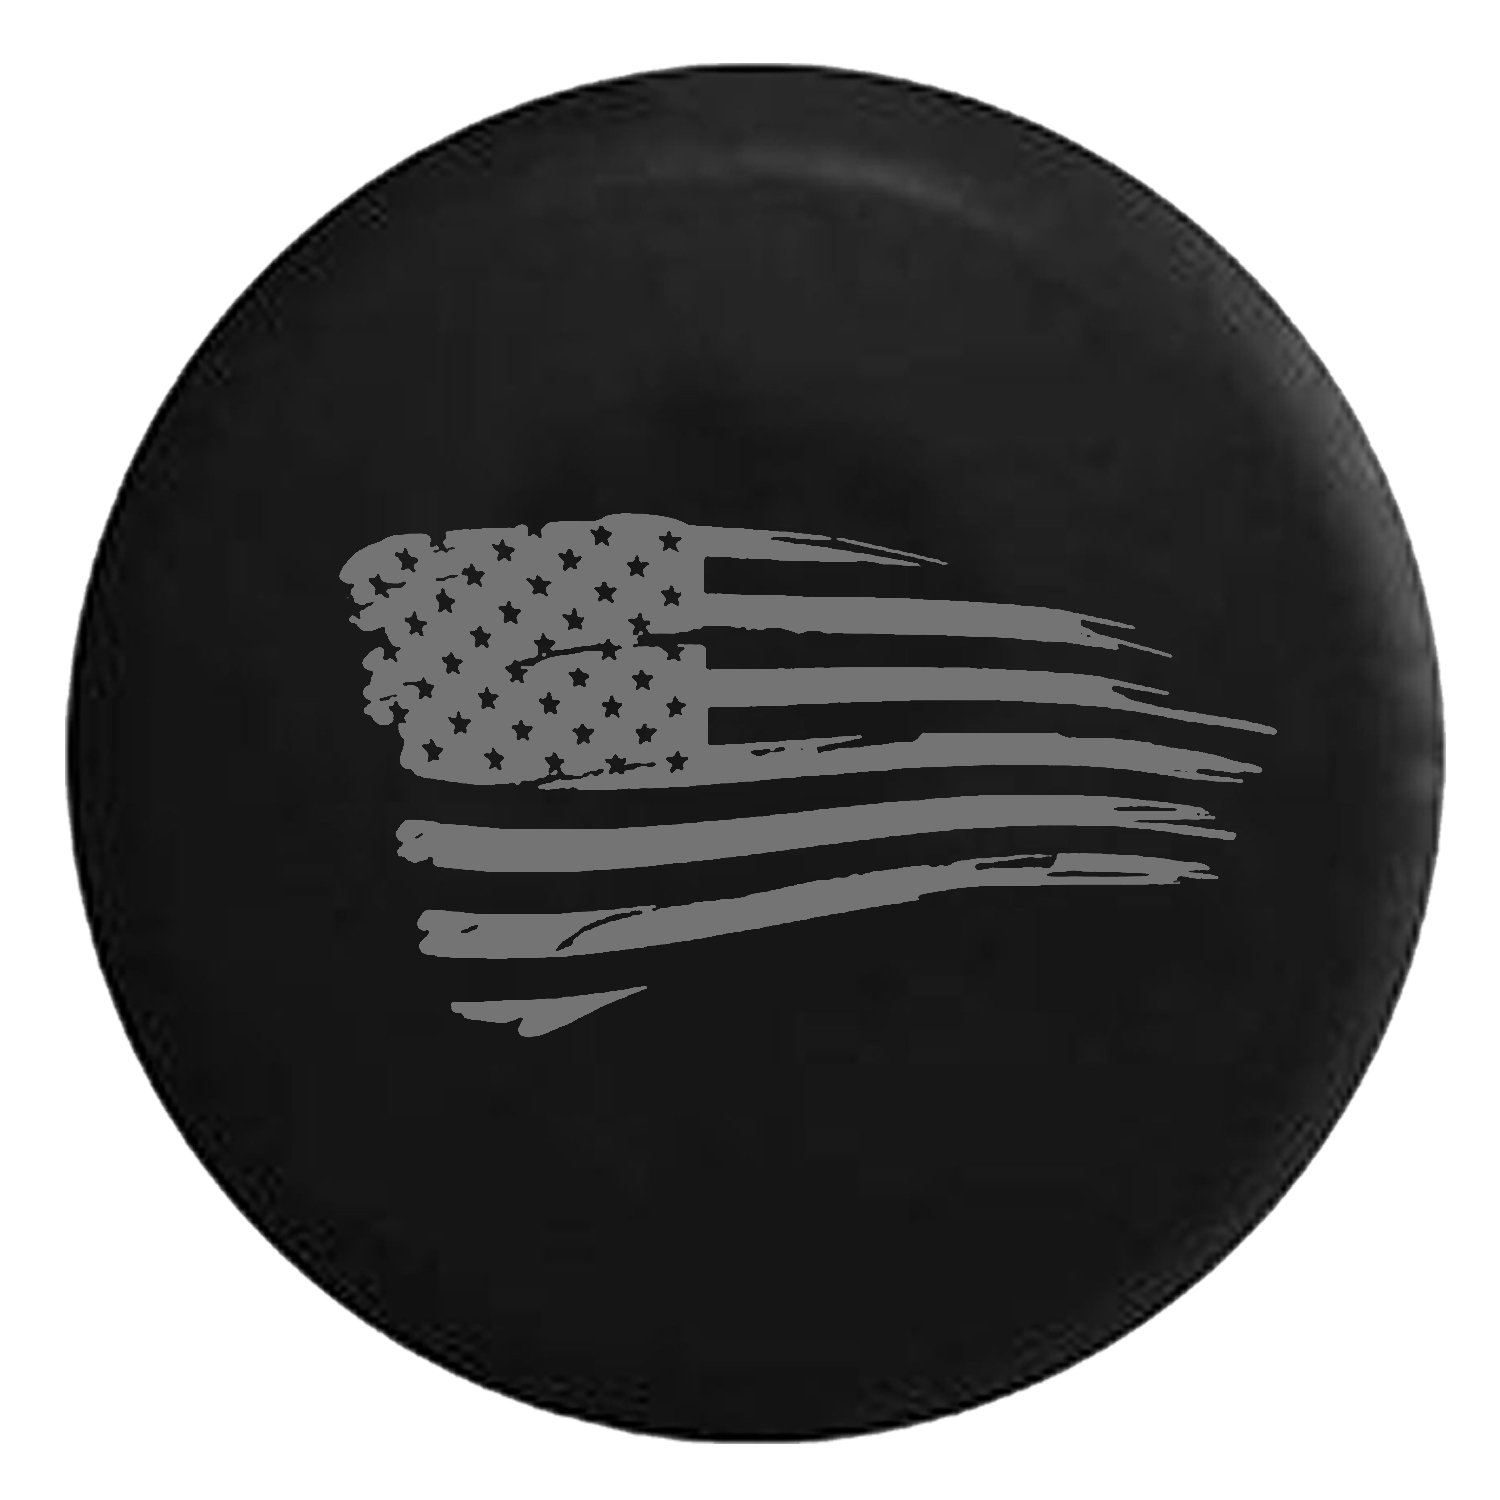 Waving American Tattered Flag Military Spare Jeep Wrangler Camper SUV Tire Cover Gray Ink 35 in